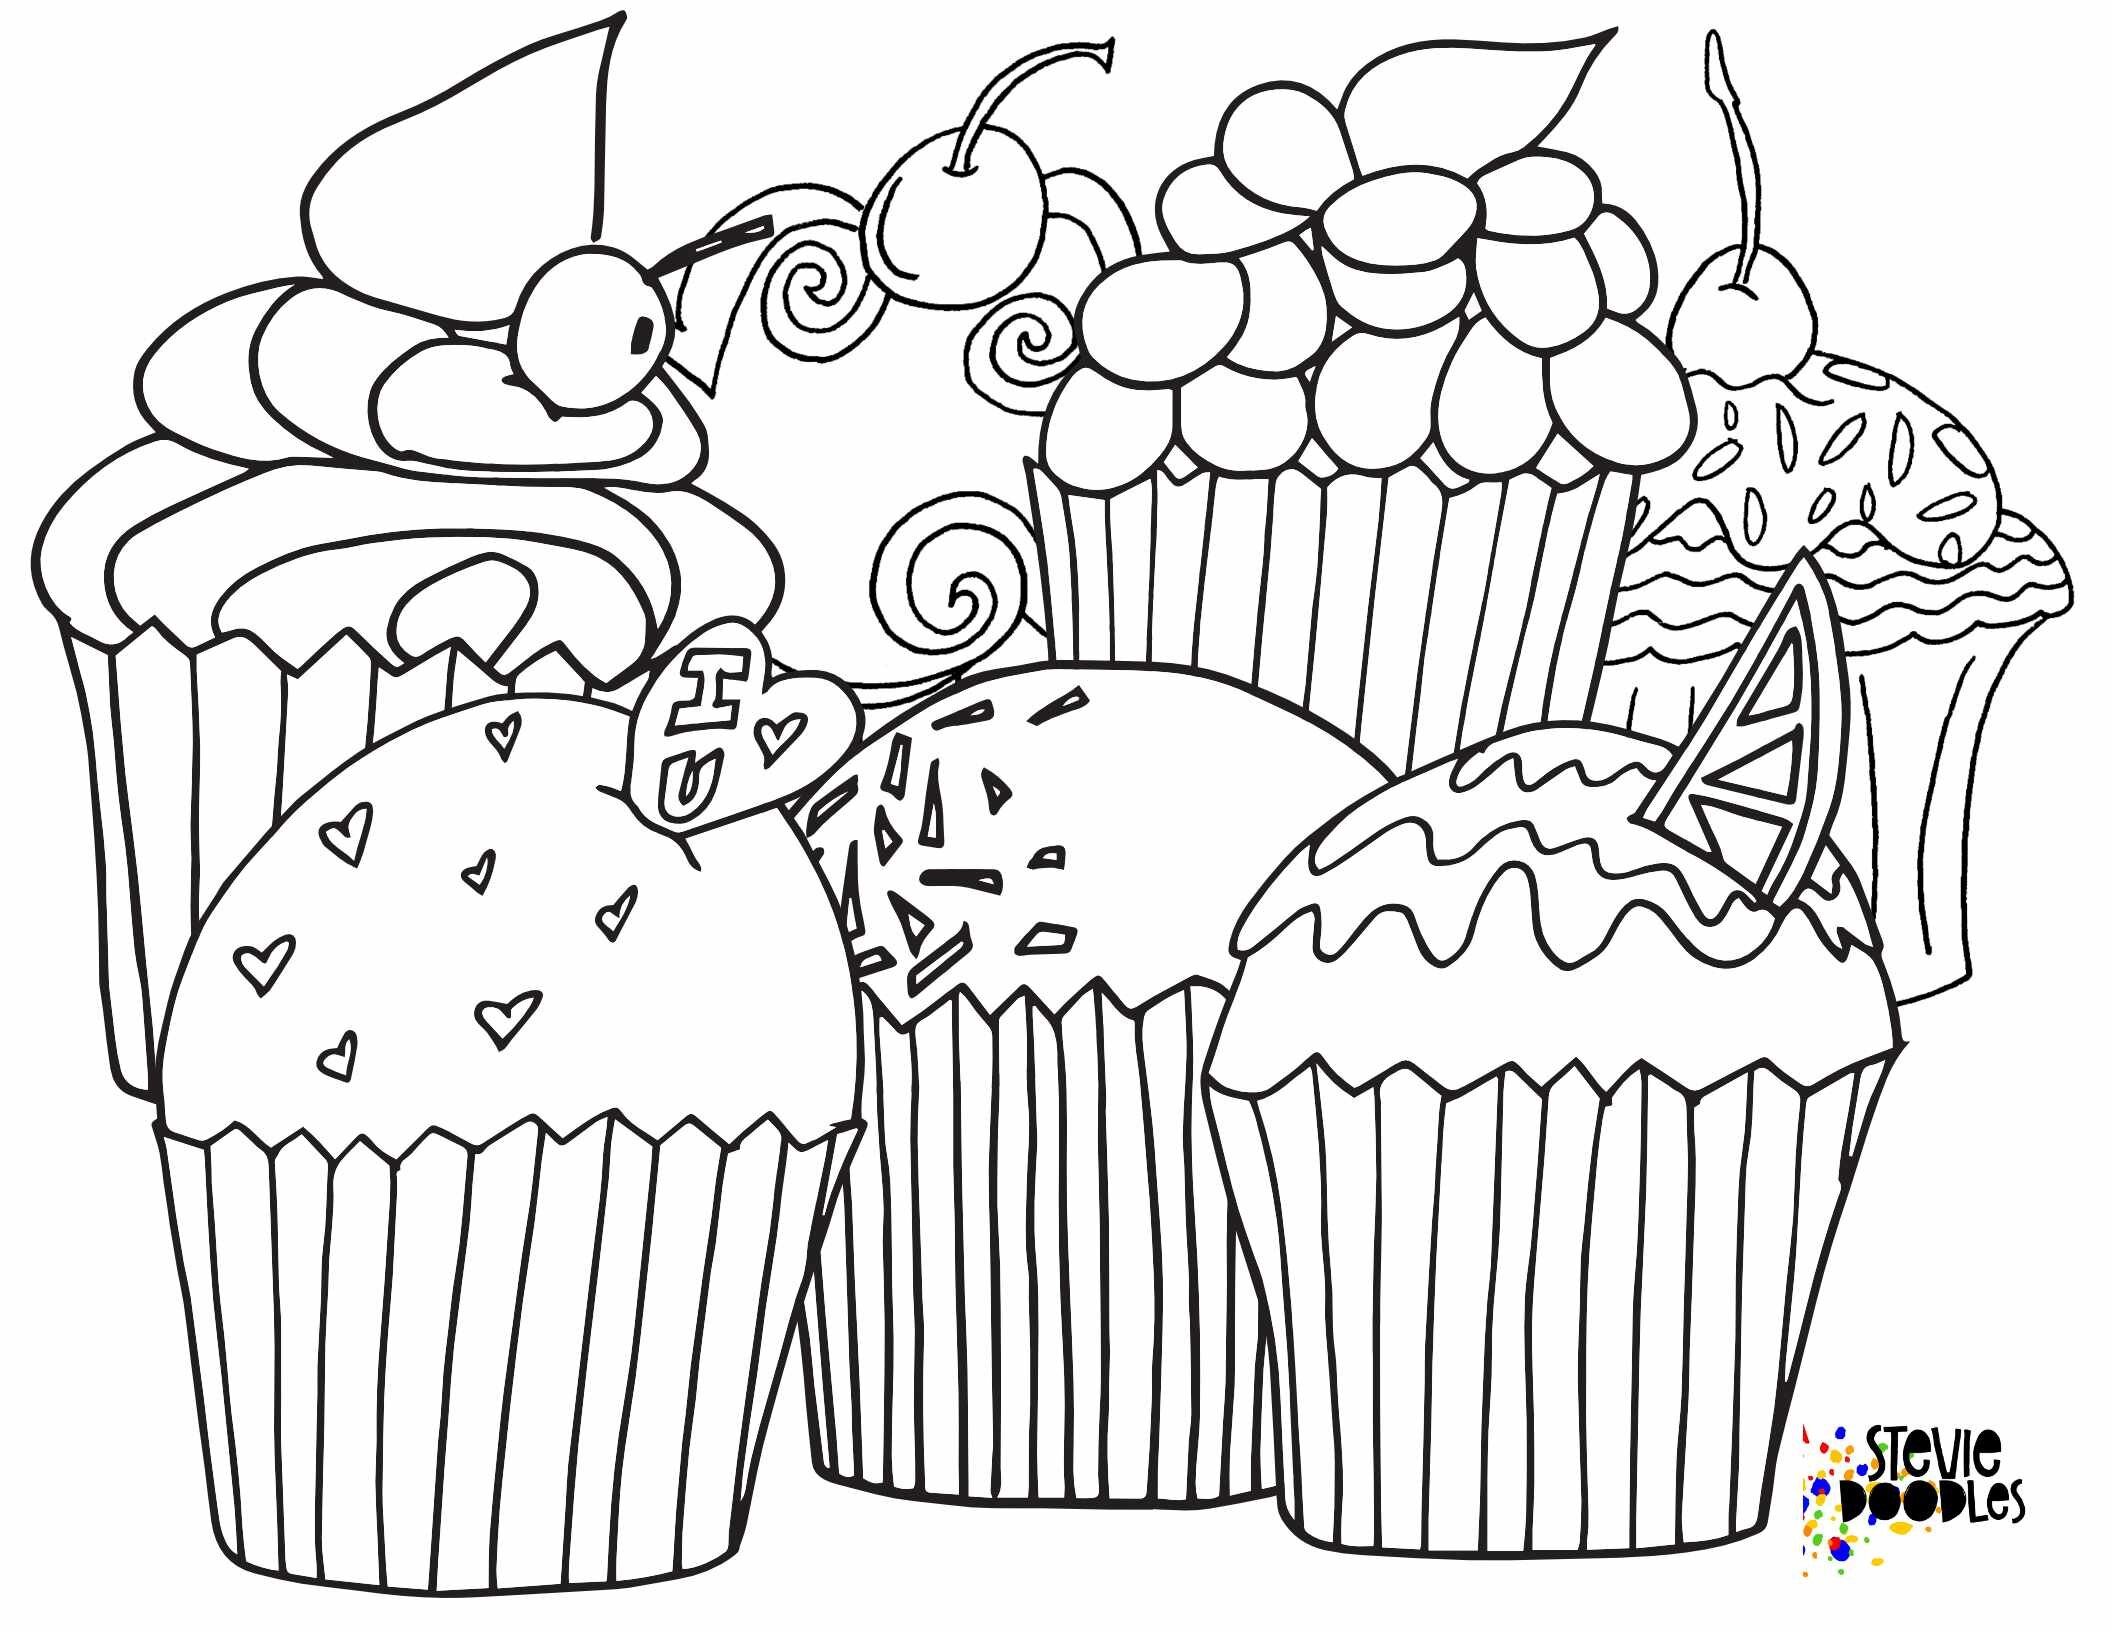 5 Free Cupcake Coloring Pages Stevie Doodles